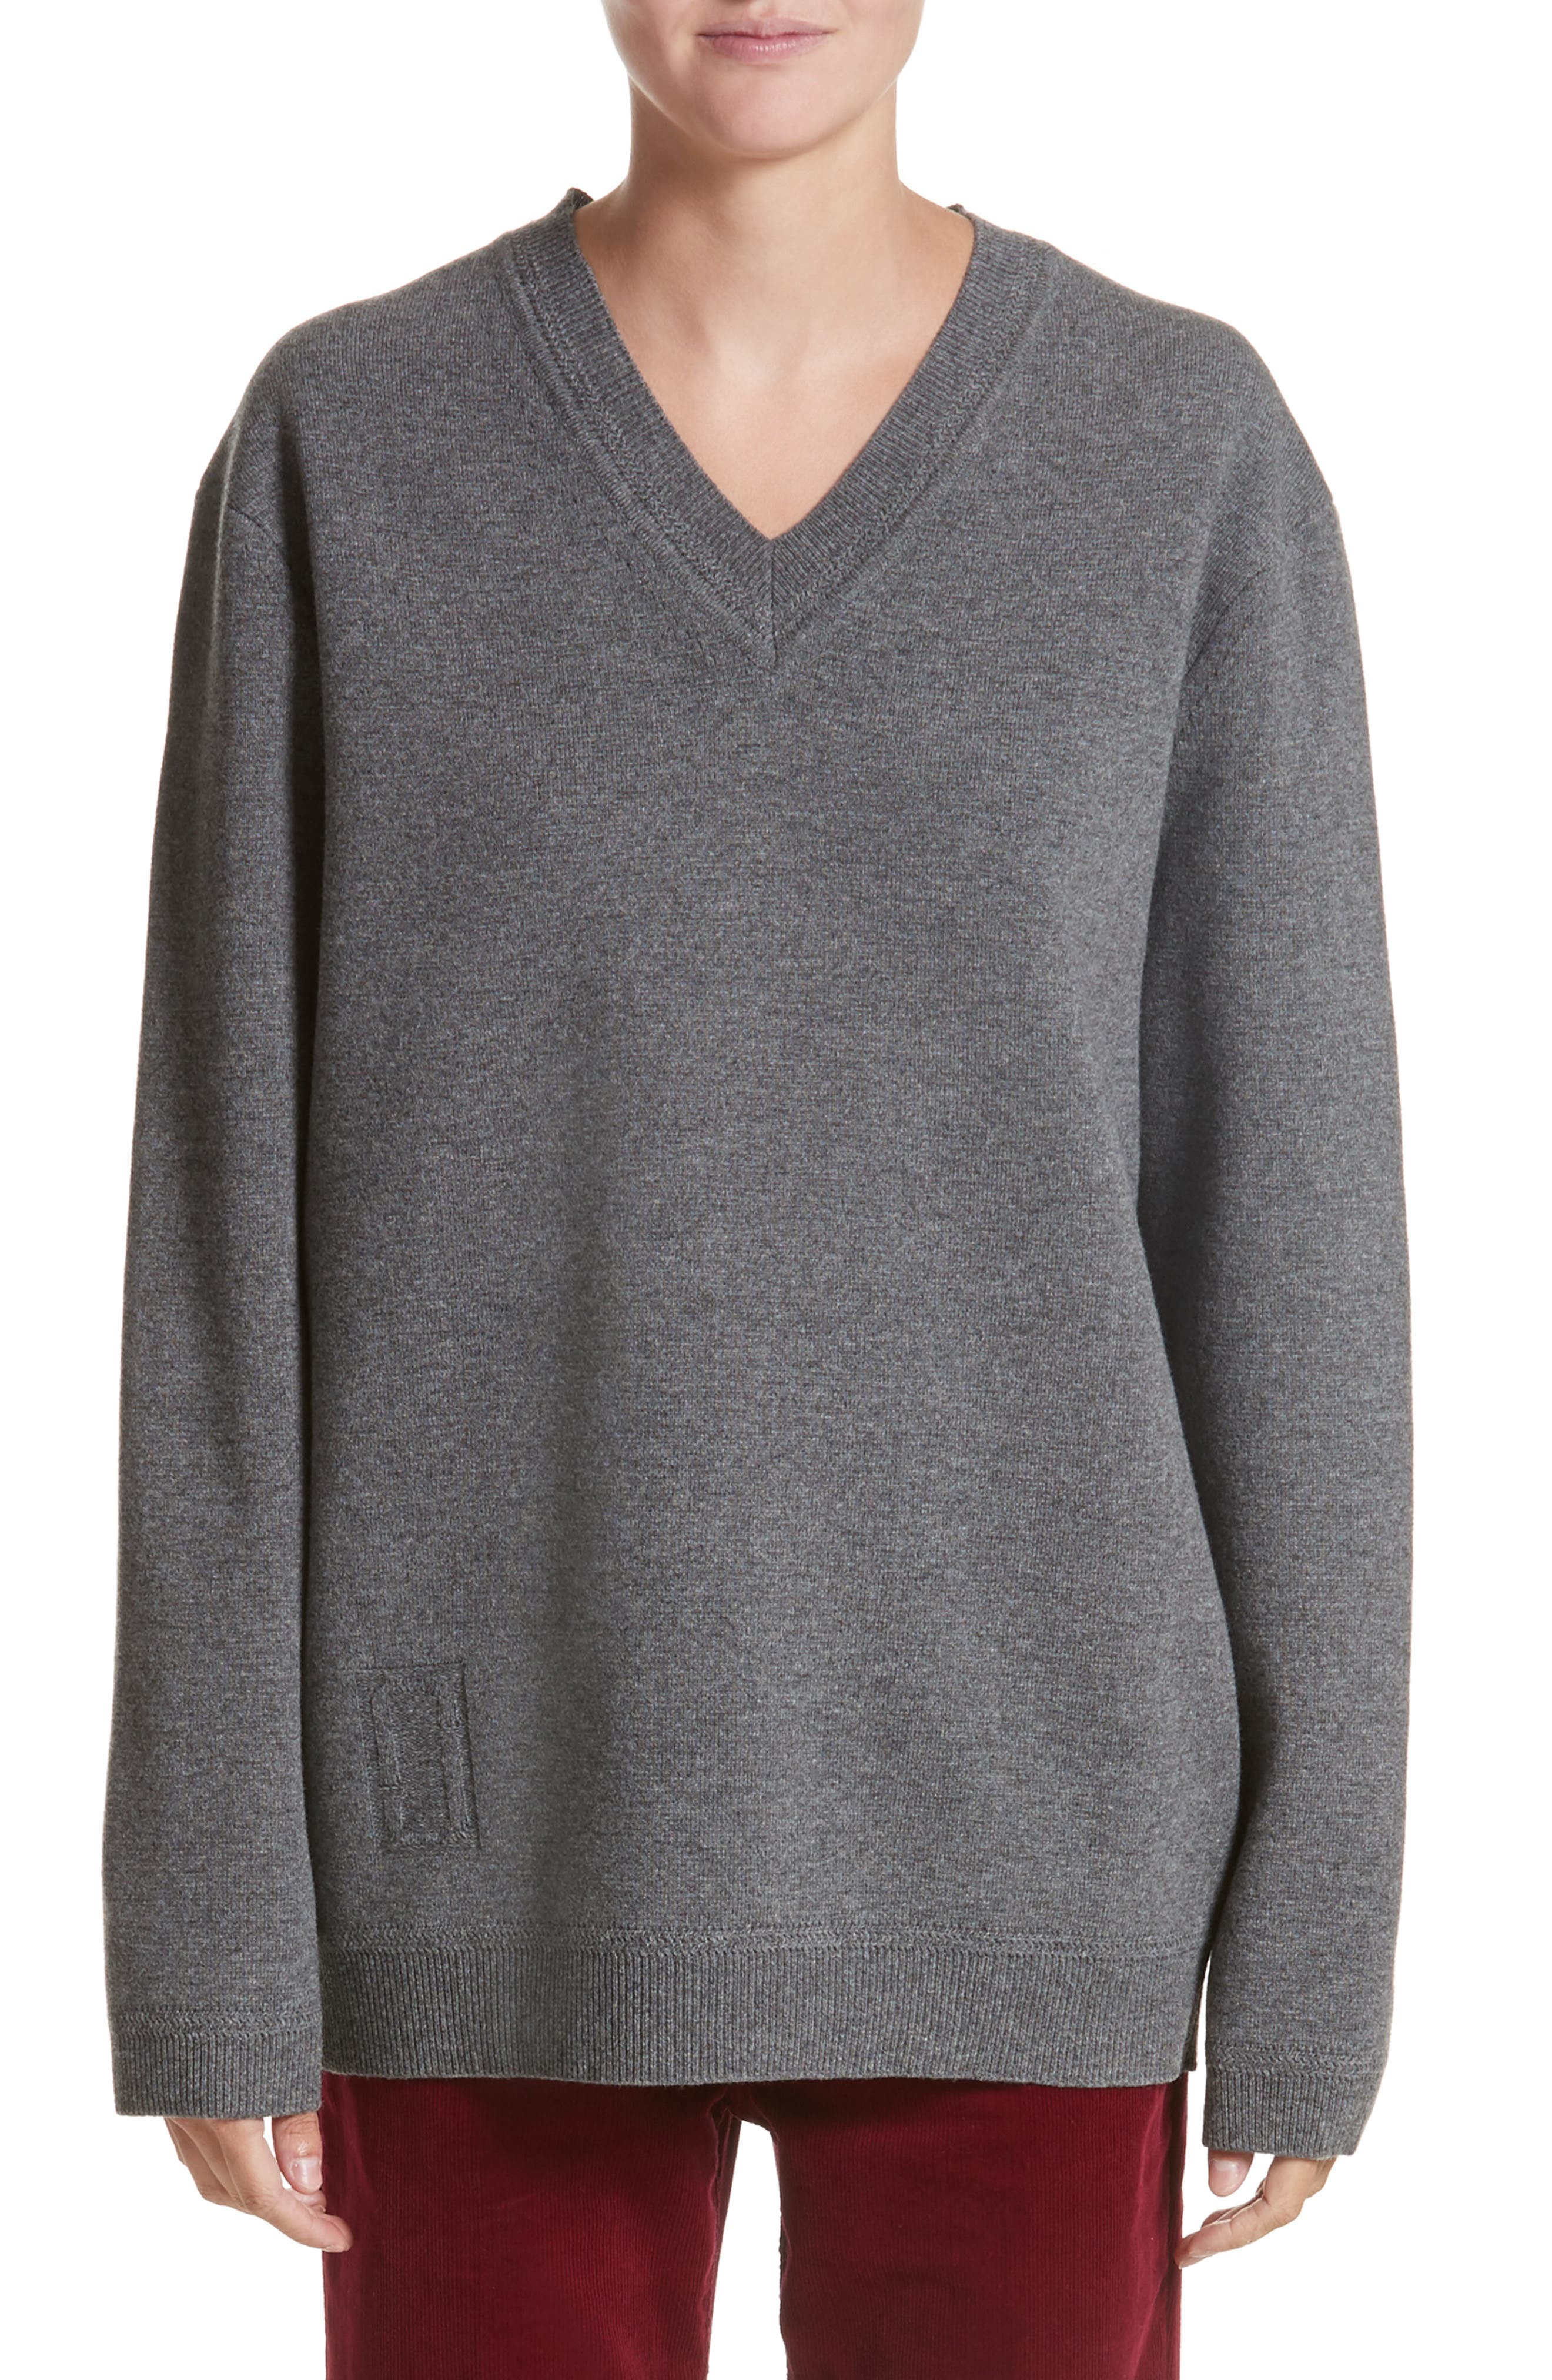 Alternate Image 1 Selected - MARC JACOBS Wool & Cashmere Sweater